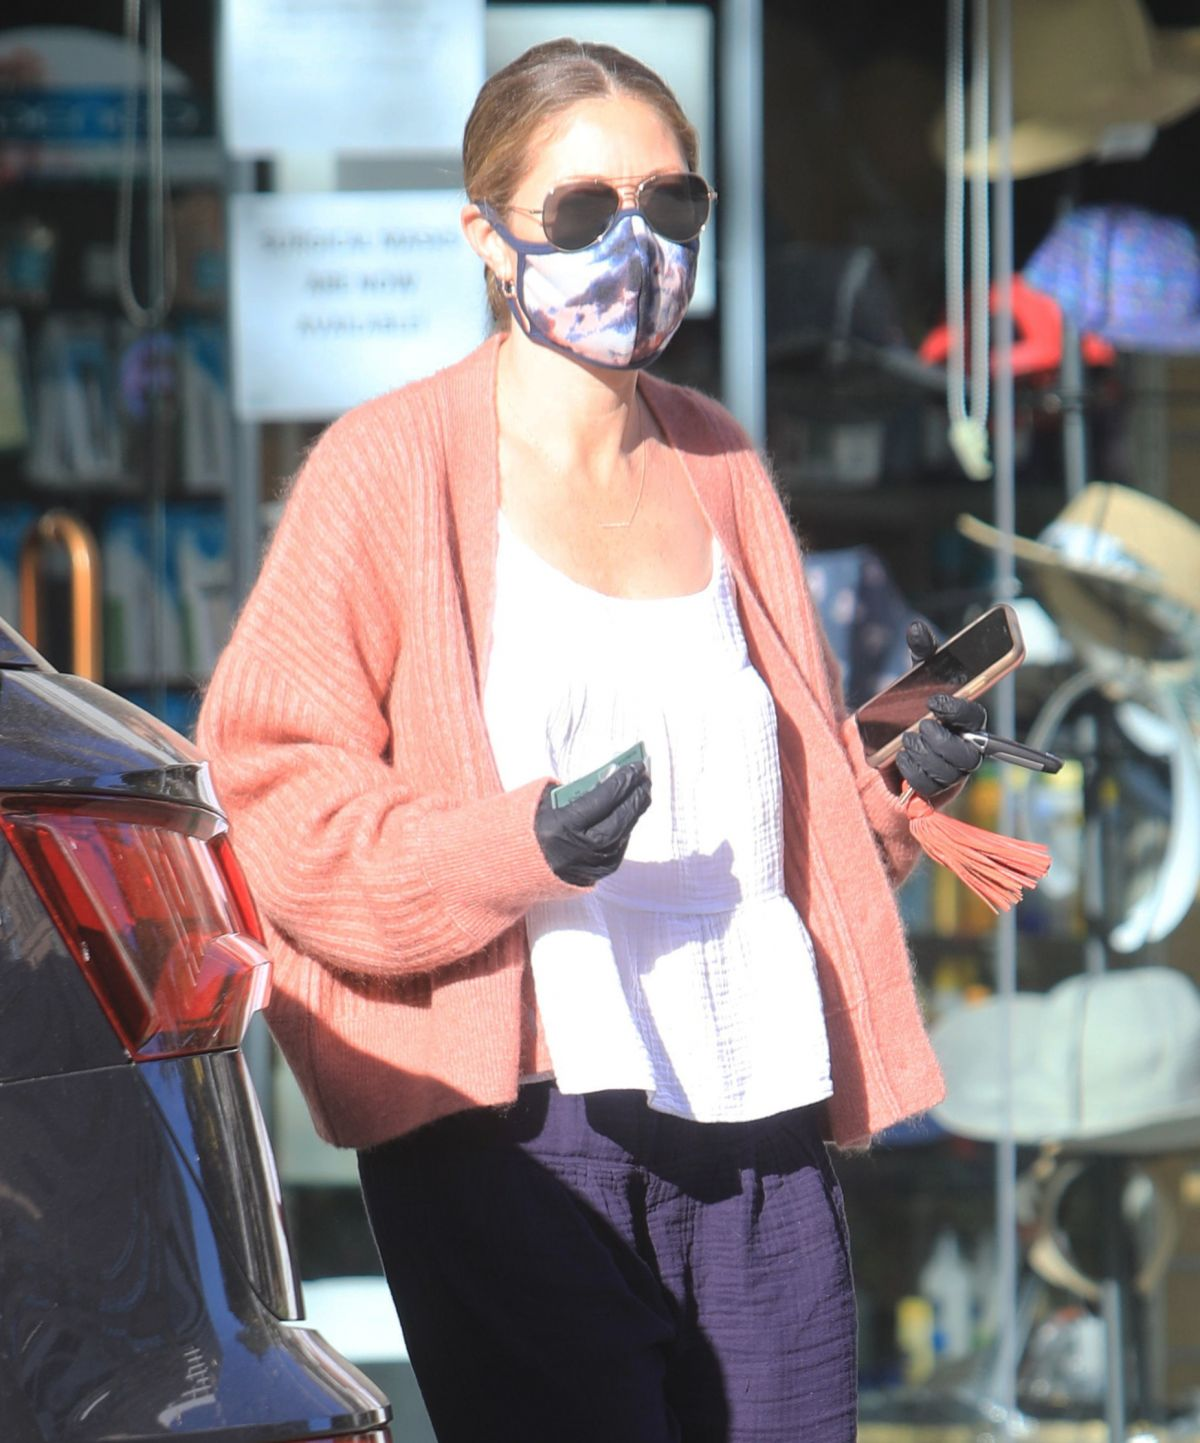 Rebecca Gayheart Wearing Mask and Gloves Out in Bevery Hills, 05.06.2020 0